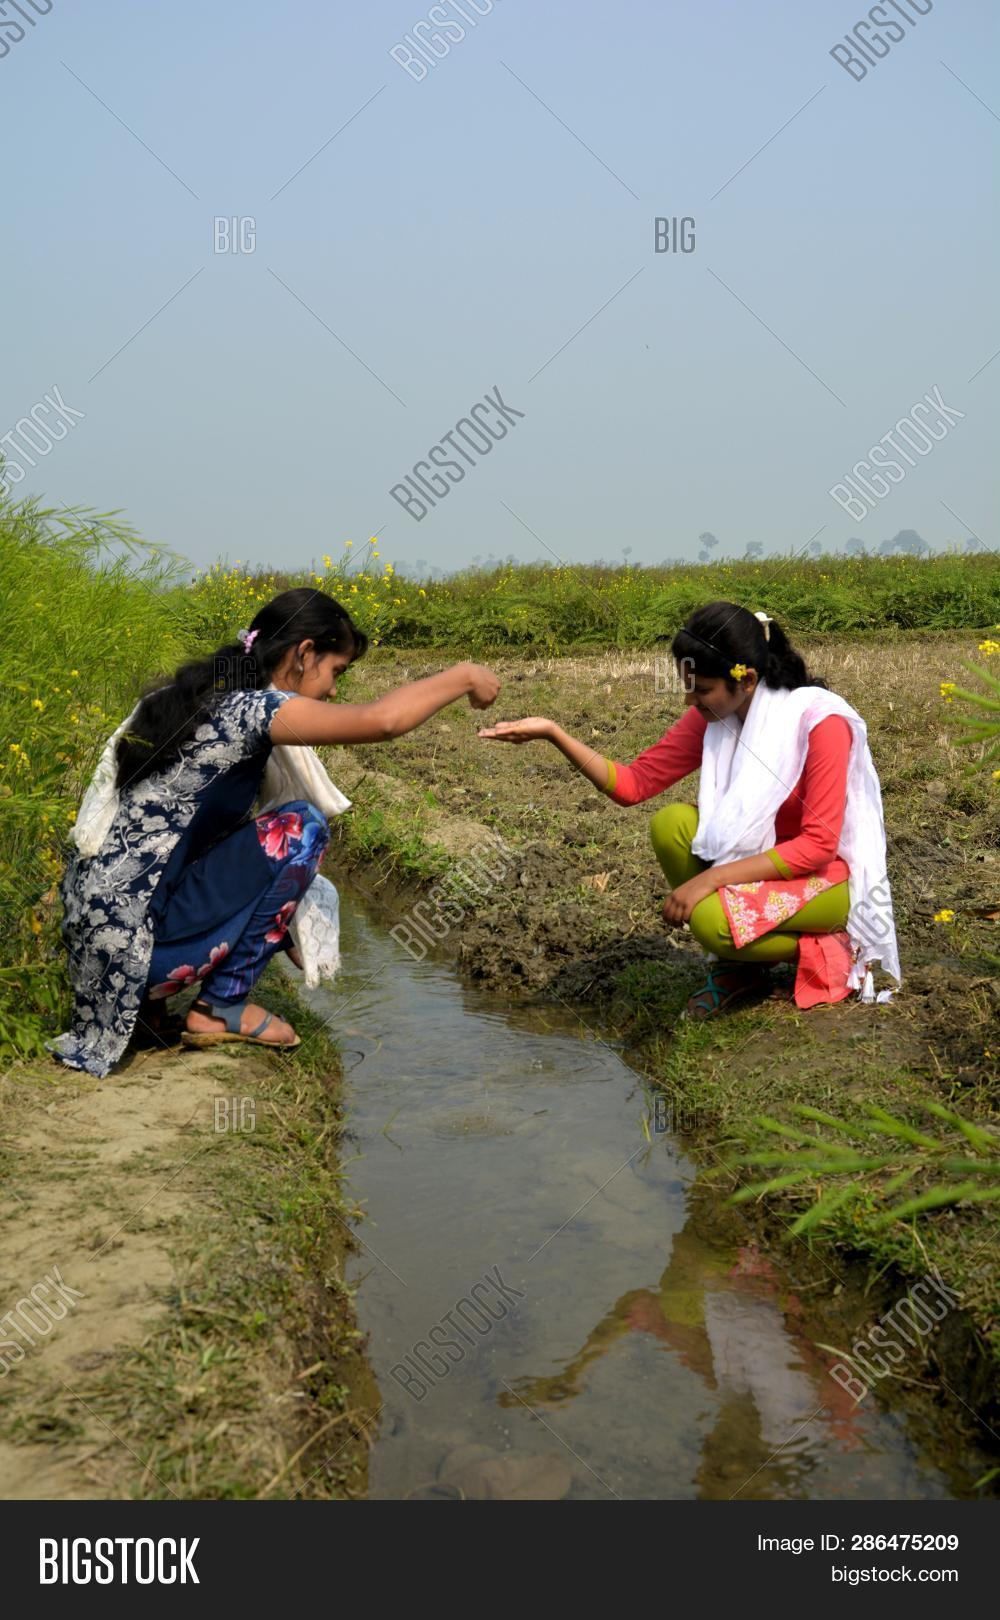 68a5b20676 Close Up Of Two Young Girls Sitting Outside In A Field On A Water Canal  Taking